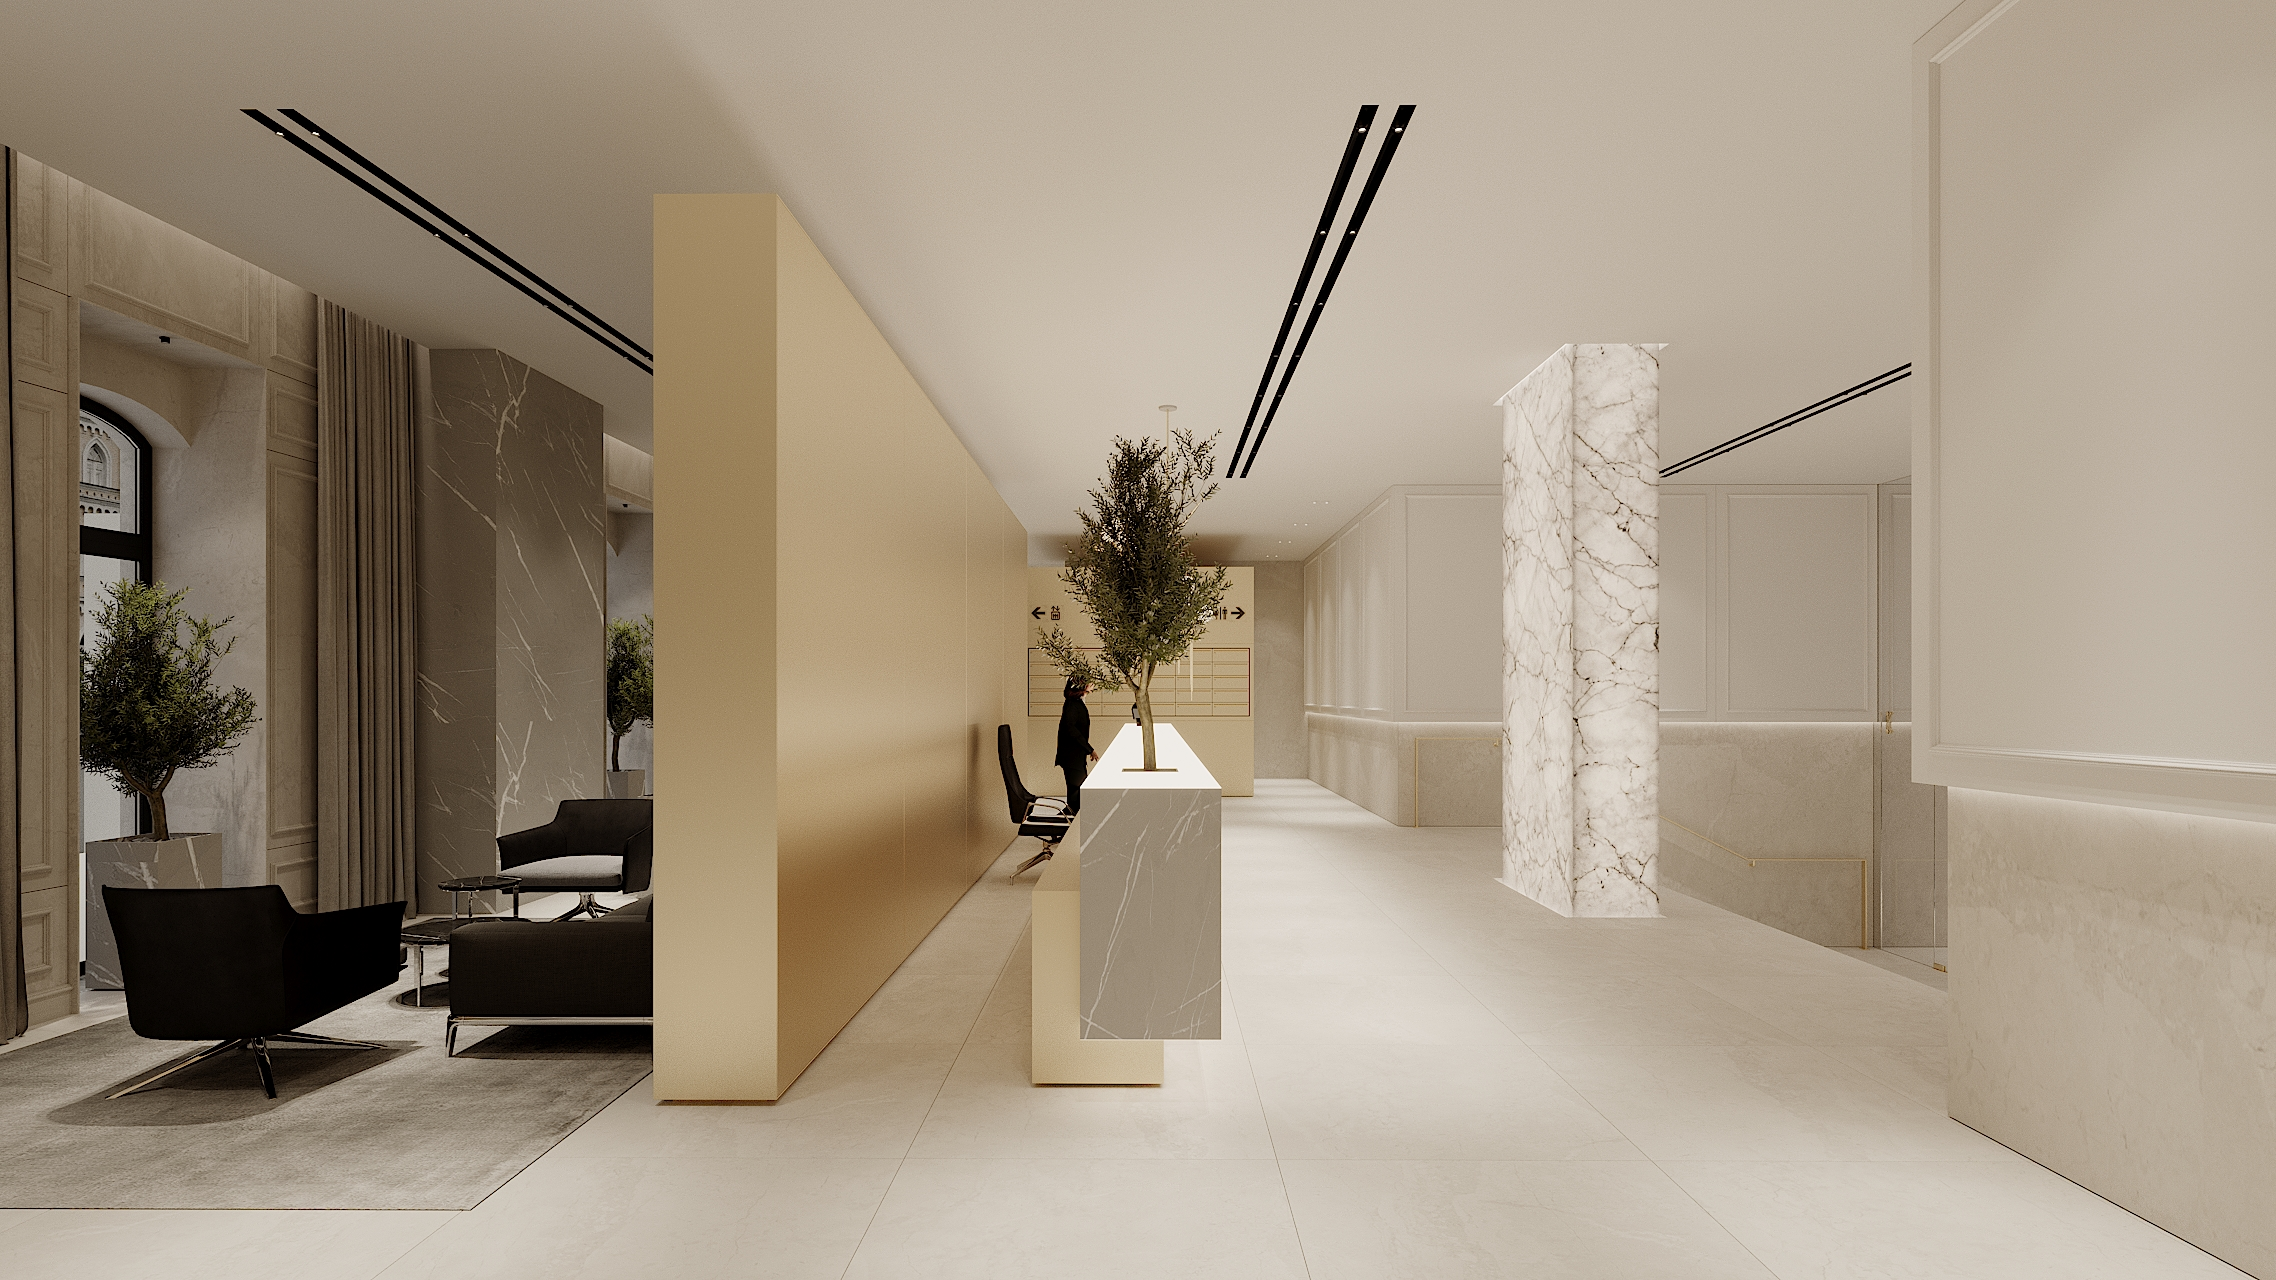 RESIDENTIAL BUILDING HALL 1 concept 1_8